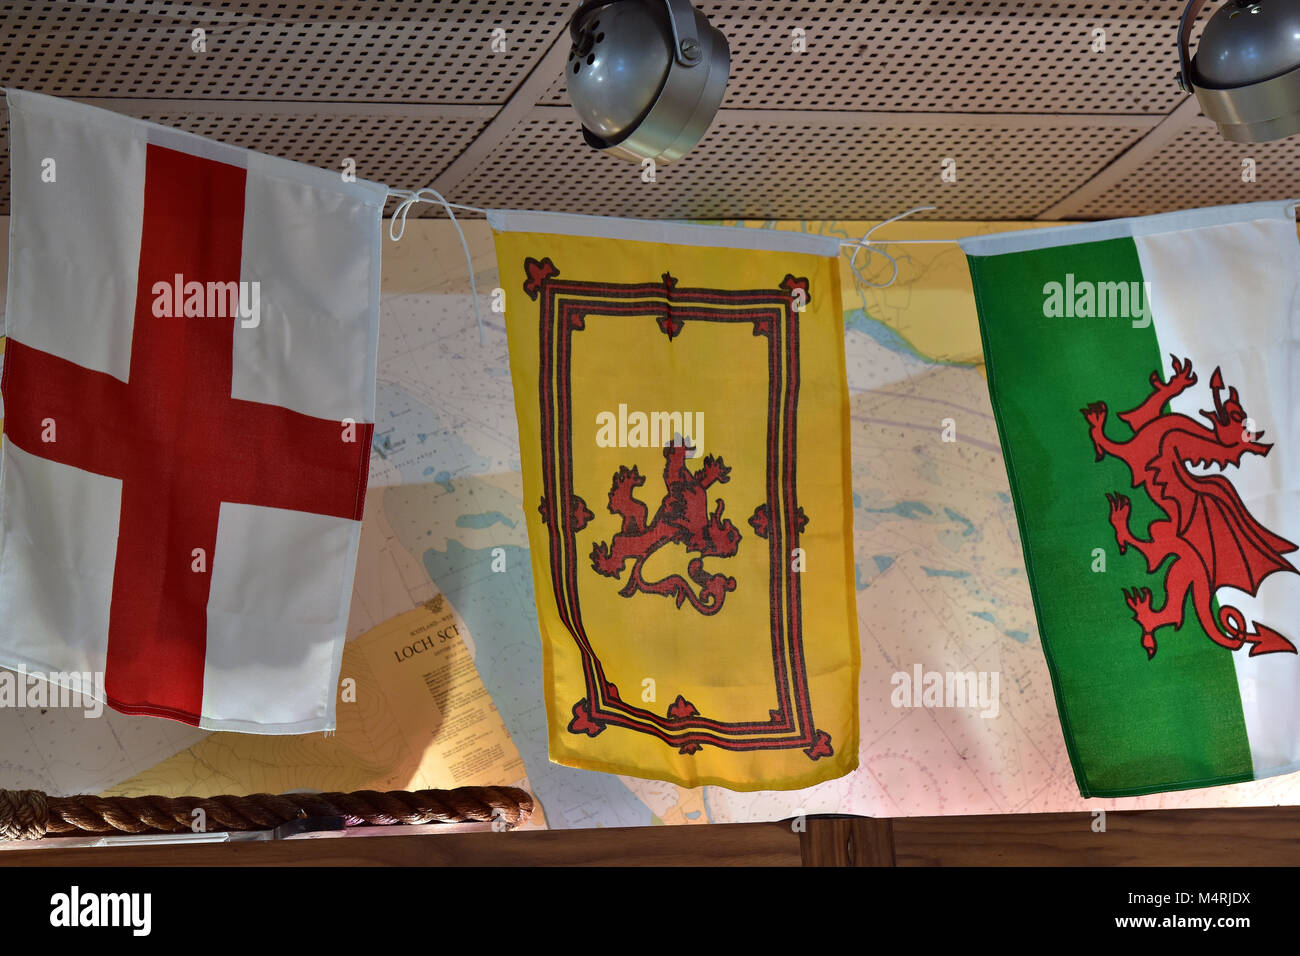 The flags or banners national identity of England Scotland and wales three nations Great Britain hanging together - Stock Image